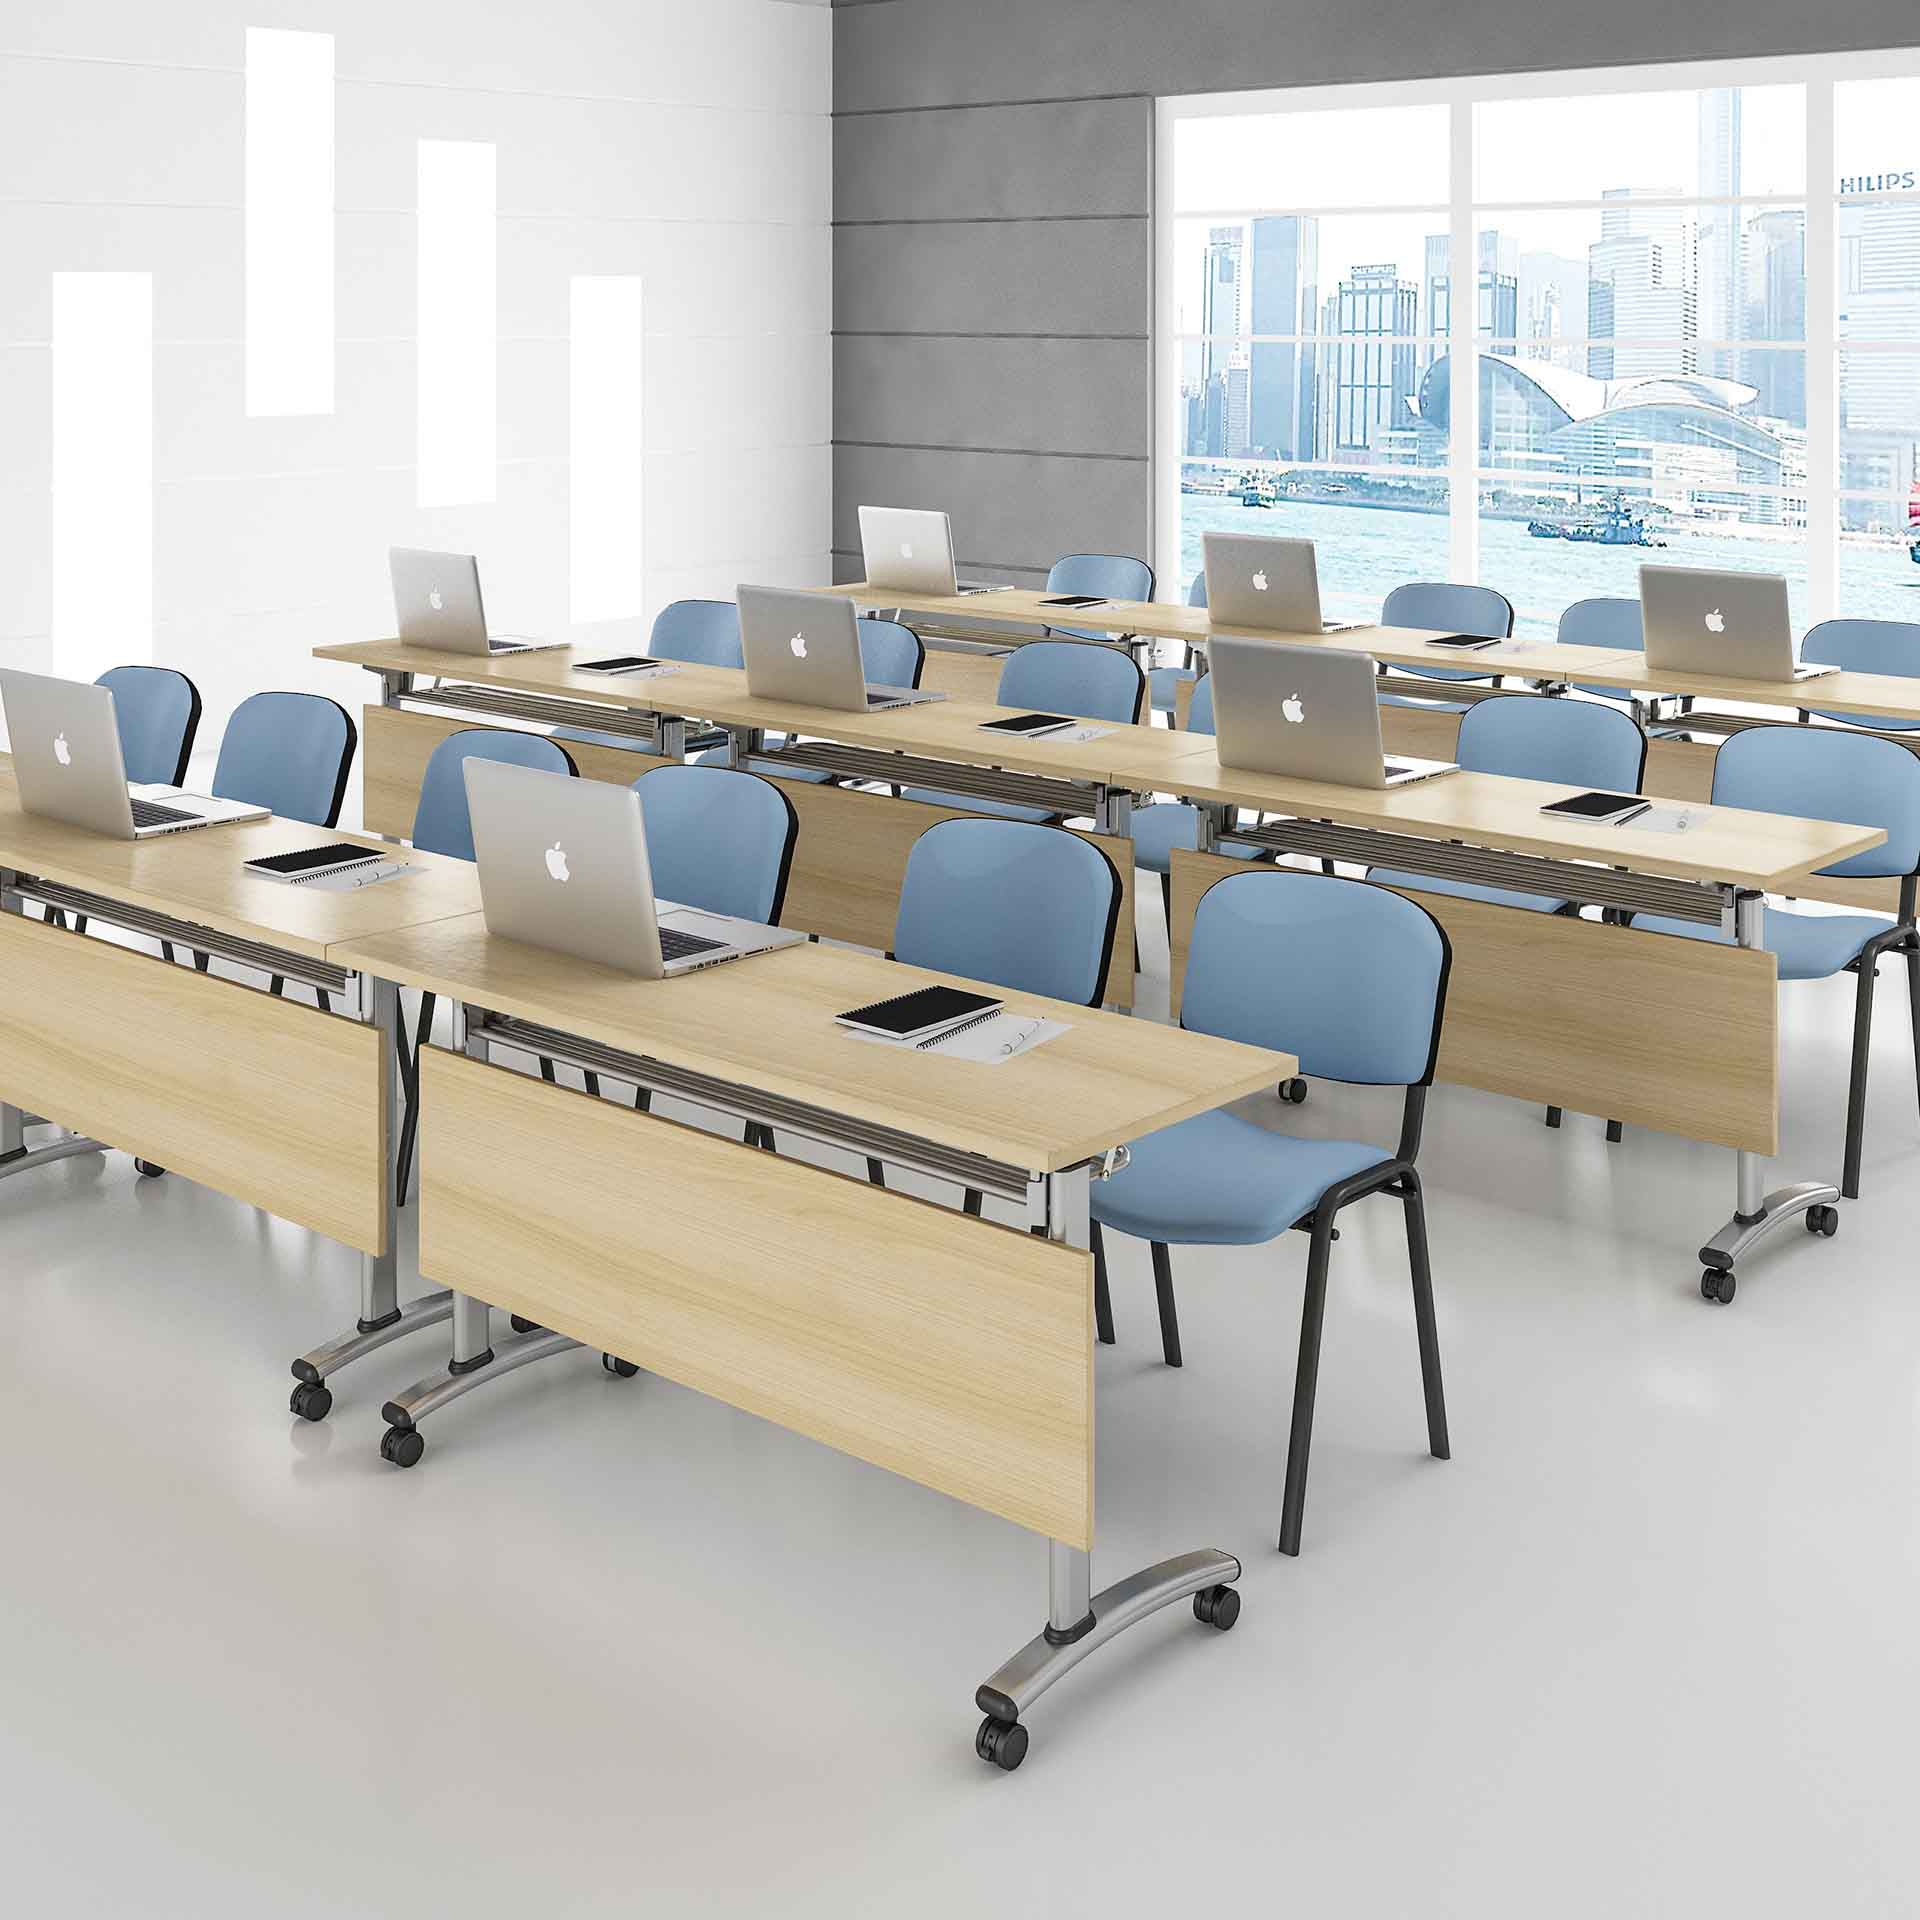 durable mobile conference table modular for conference for meeting room-8